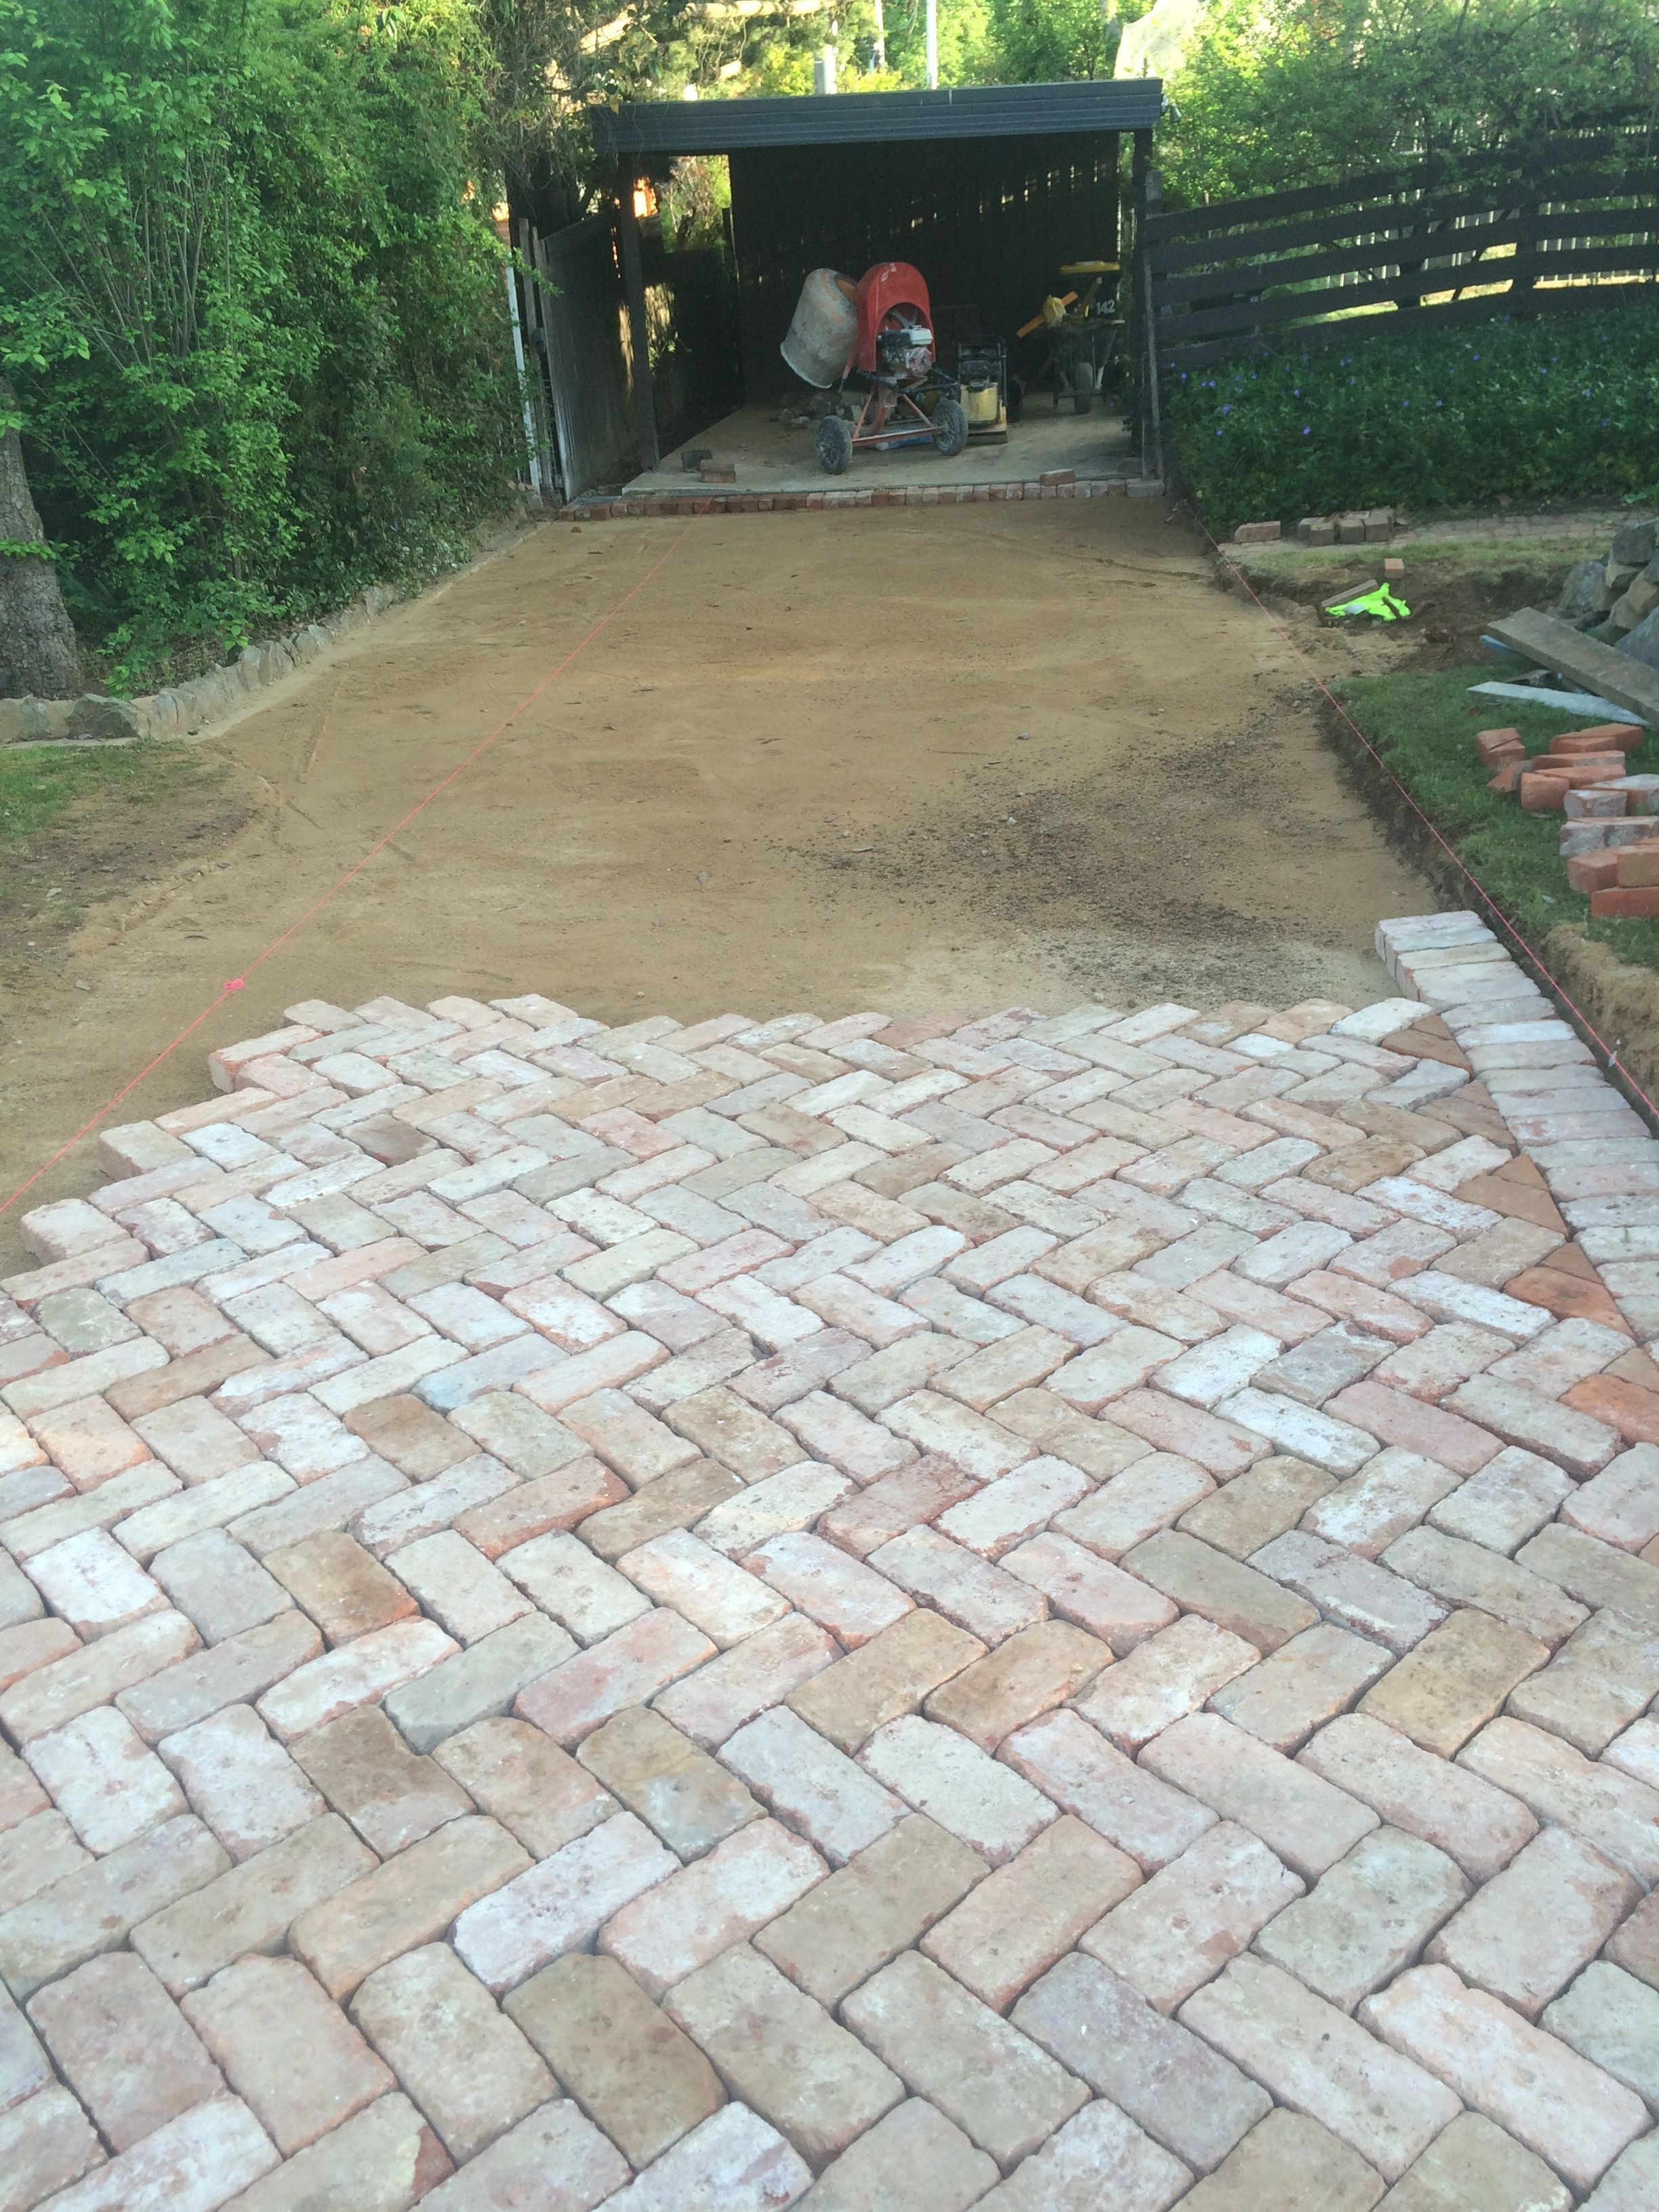 21 Stunning Picture Collection for Paving Ideas & Driveway Ideas